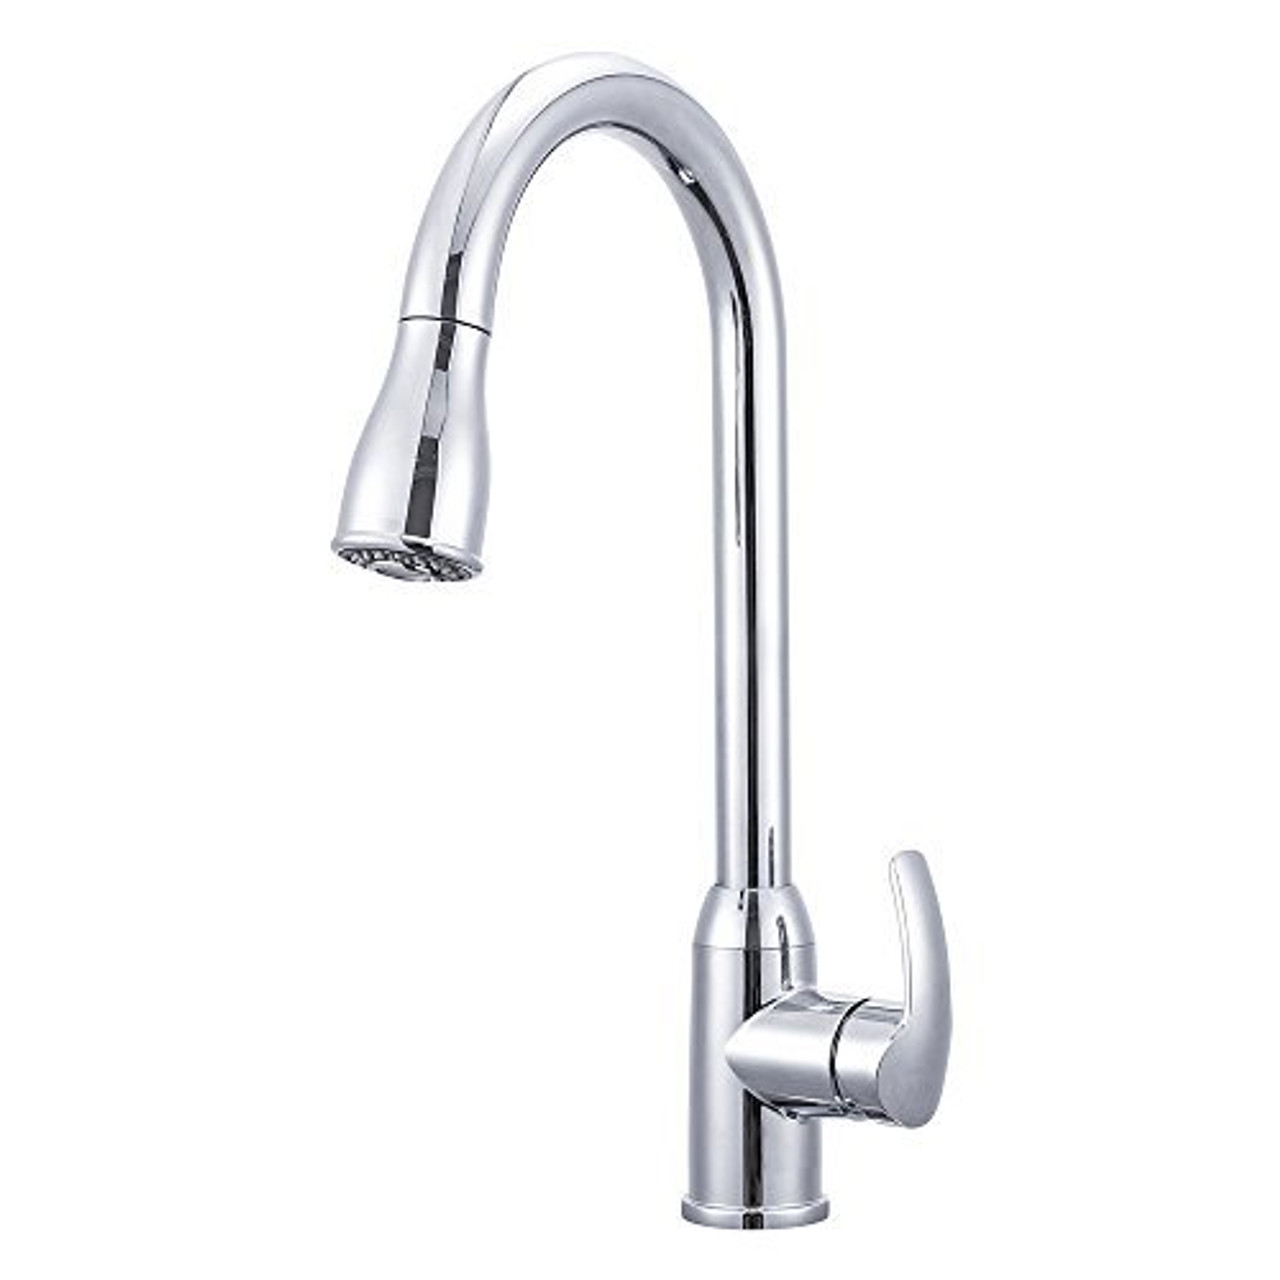 Heavy Duty Single Lever Pull-Down RV Kitchen Faucet - RVFaucet.com